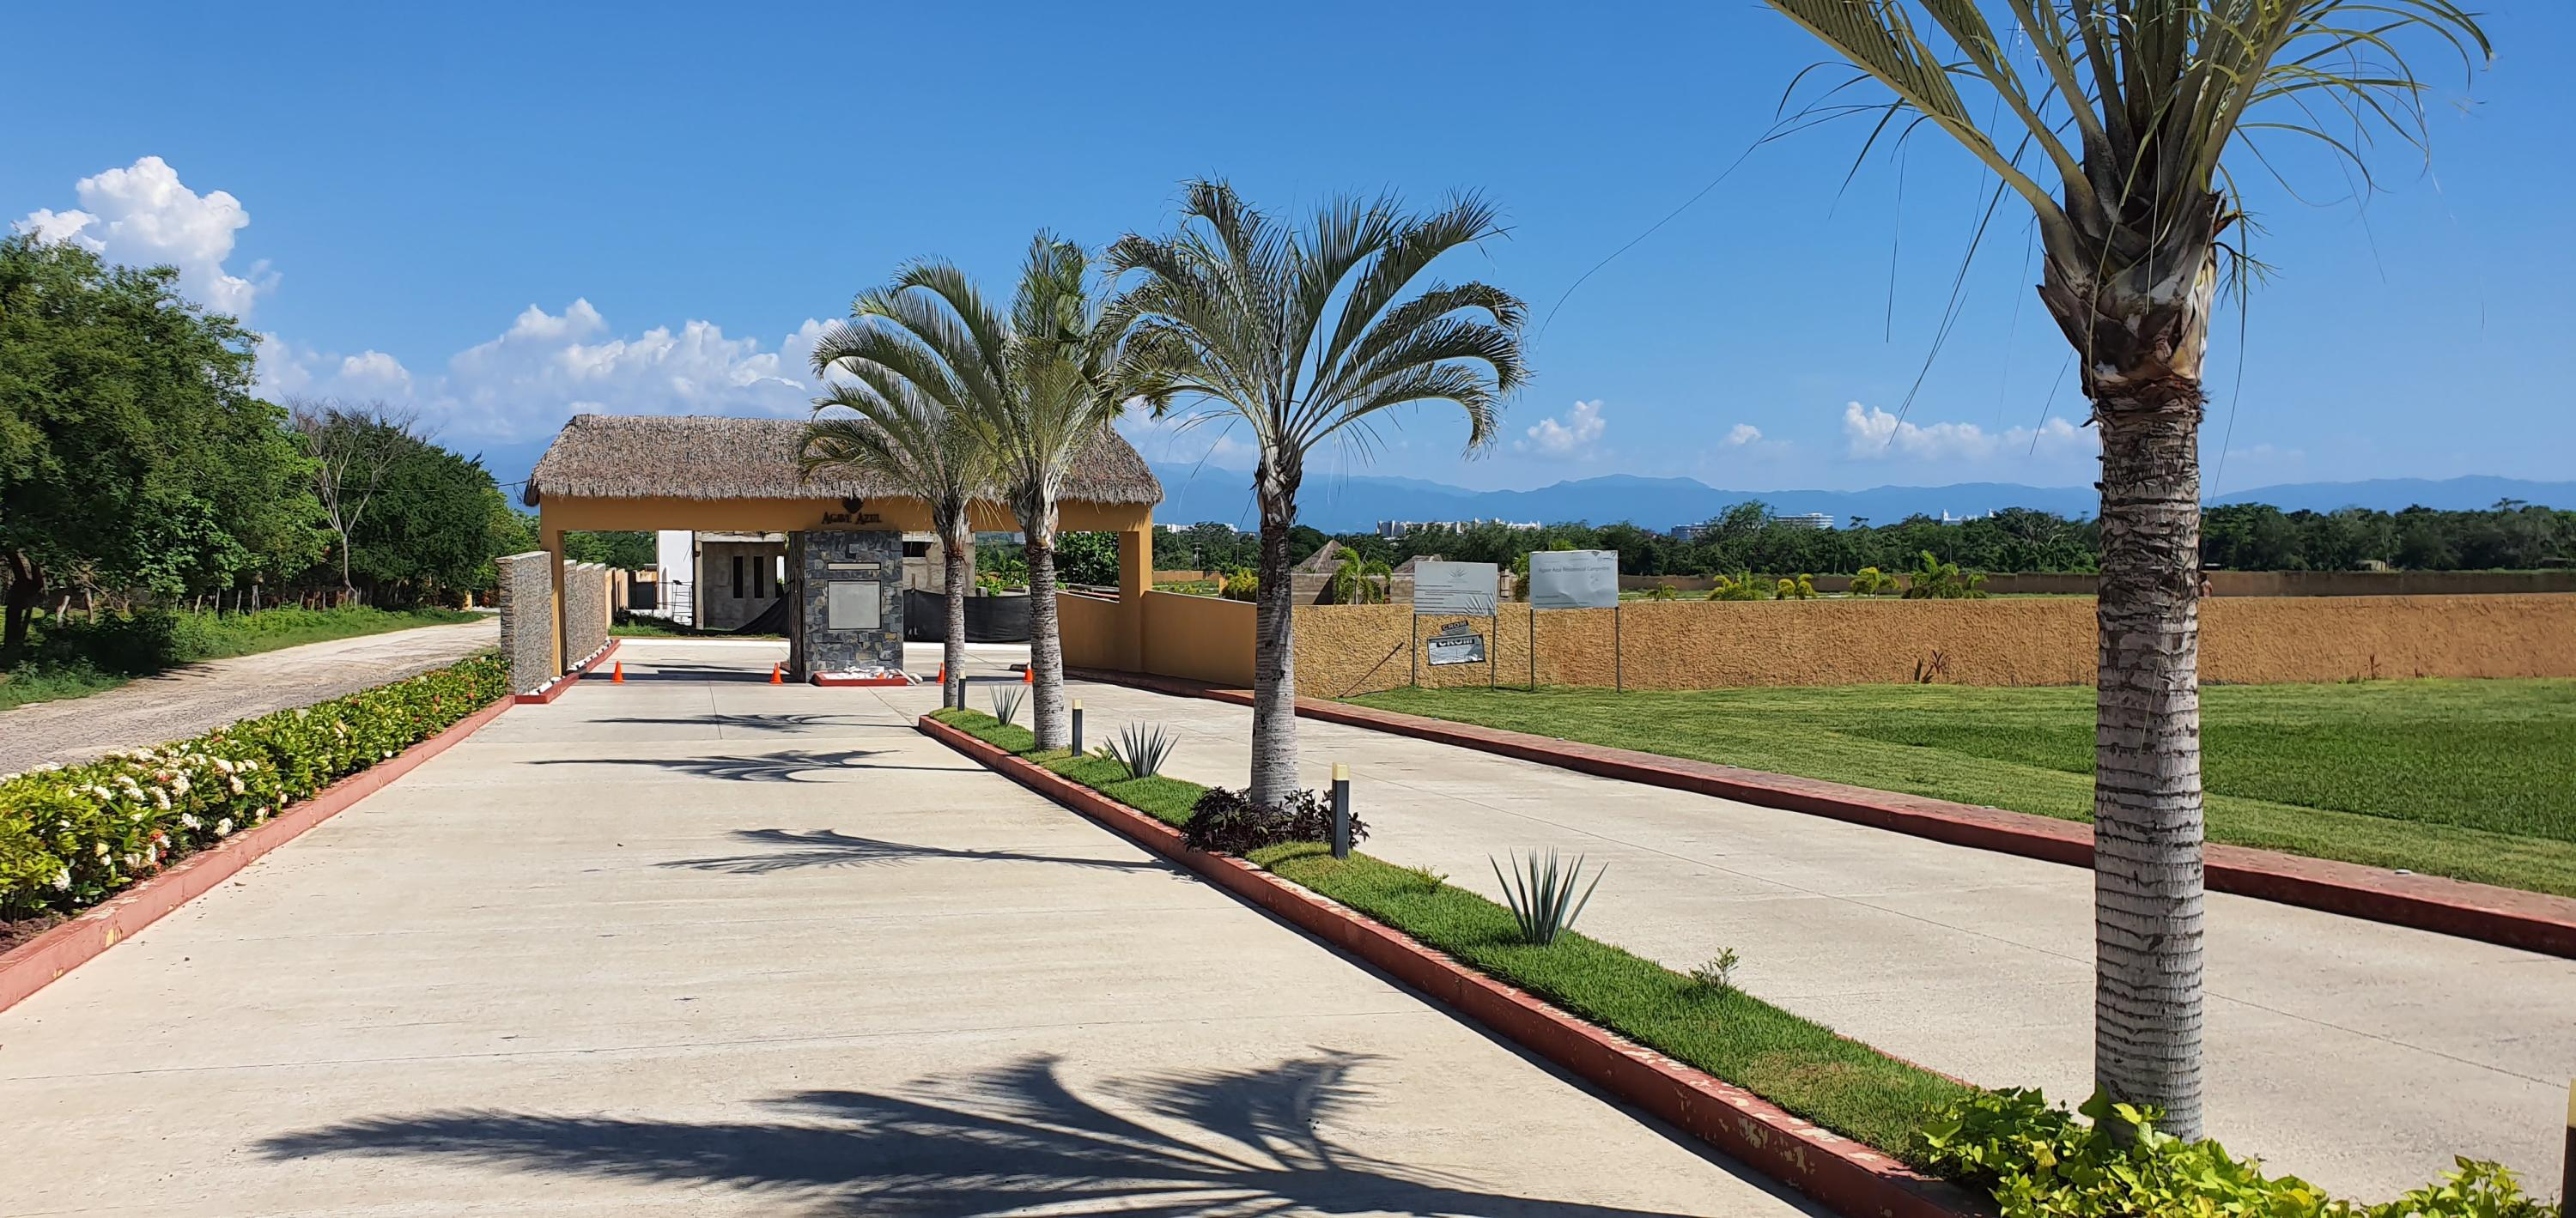 LOTE COND. AGAVE AZUL